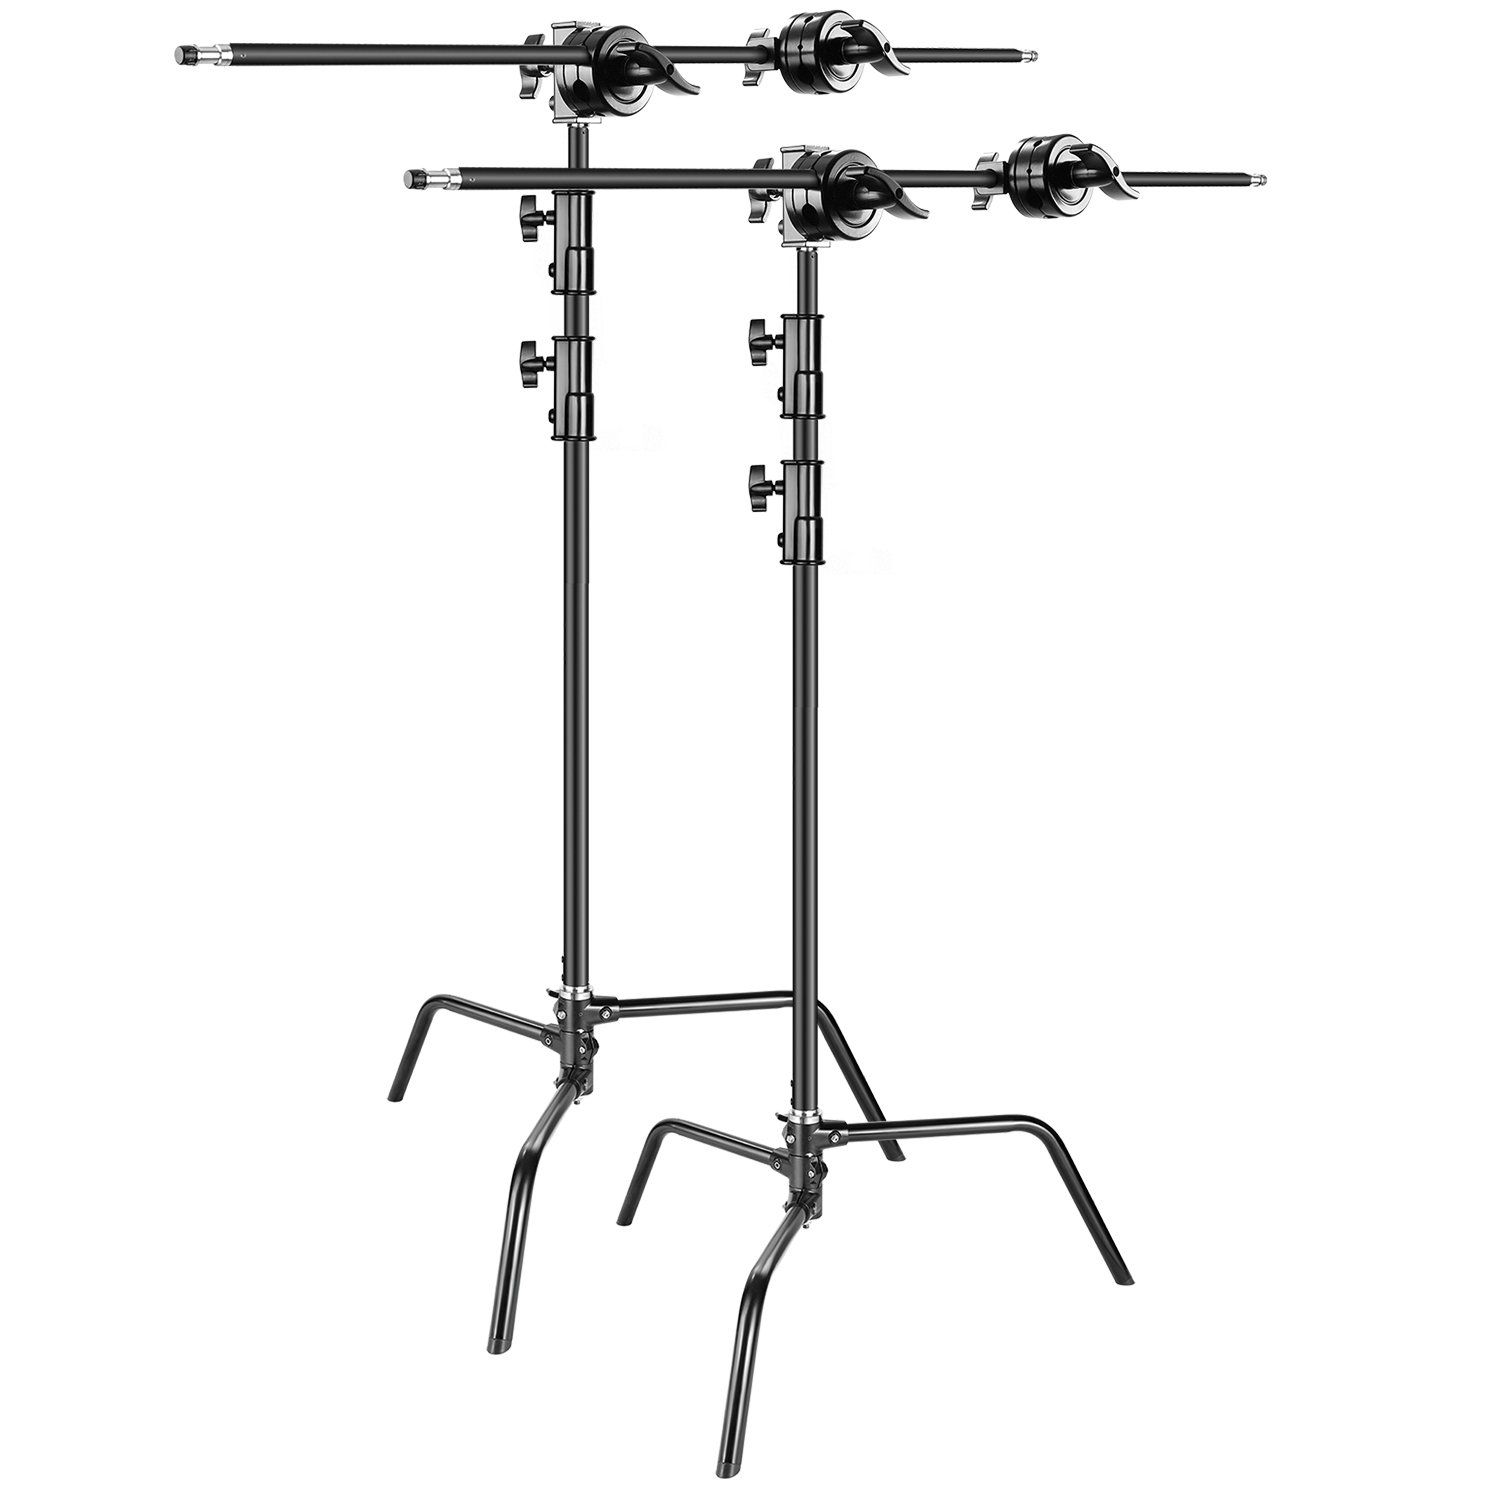 Neewer Heavy Duty Light Stand with Detachable Base, 5-10 feet/1.6-3.2 Meters Adjustable C Stand with 2 Risers for Studio Photography Location Shooting, Aluminum Alloy, Max Load Capacity 22 pounds 10089709